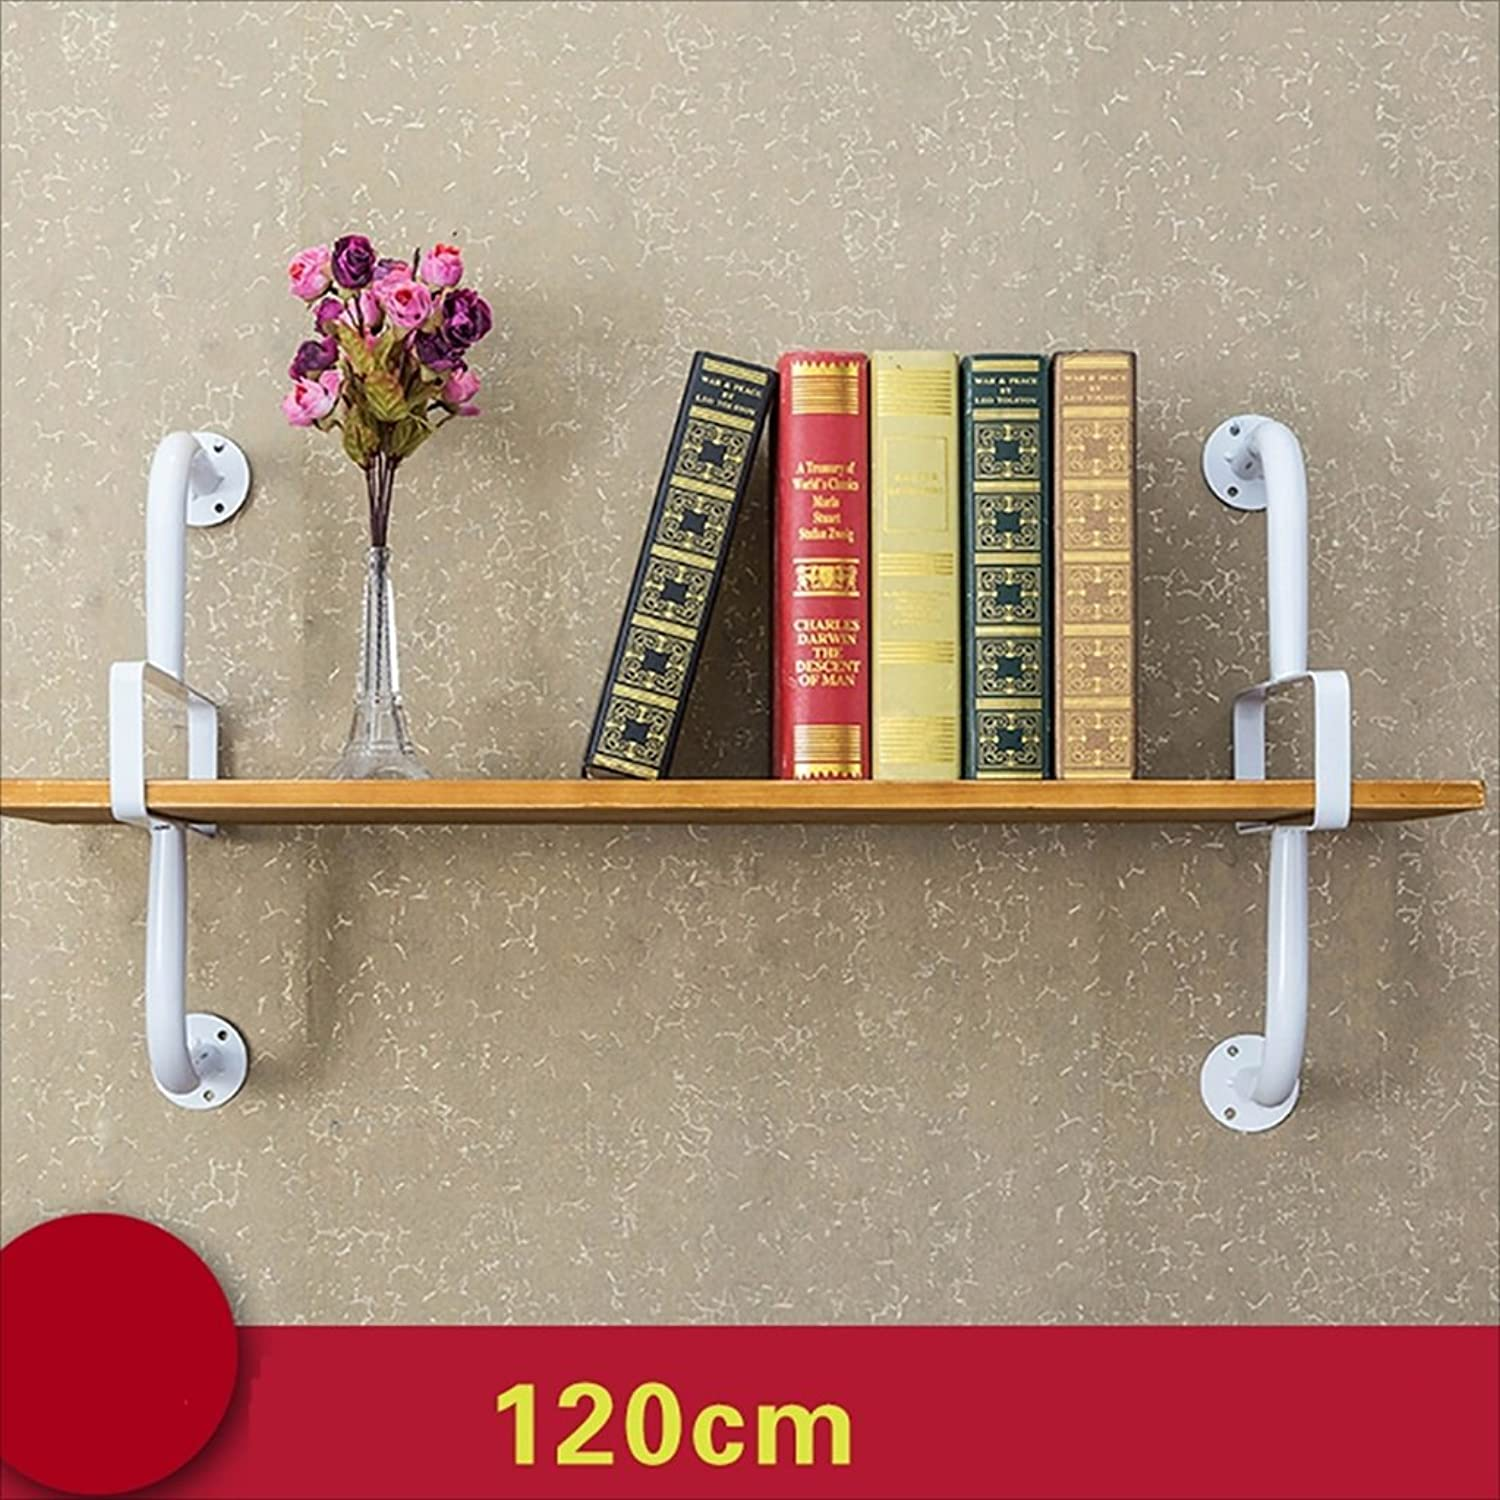 Bookshelf Clothing Store Shelves on The Wall Kitchen Storage Solid Wood Shelves Wrought Iron Paint partition Shelf Wall Units Bookcases (Size   120  50  26cm)